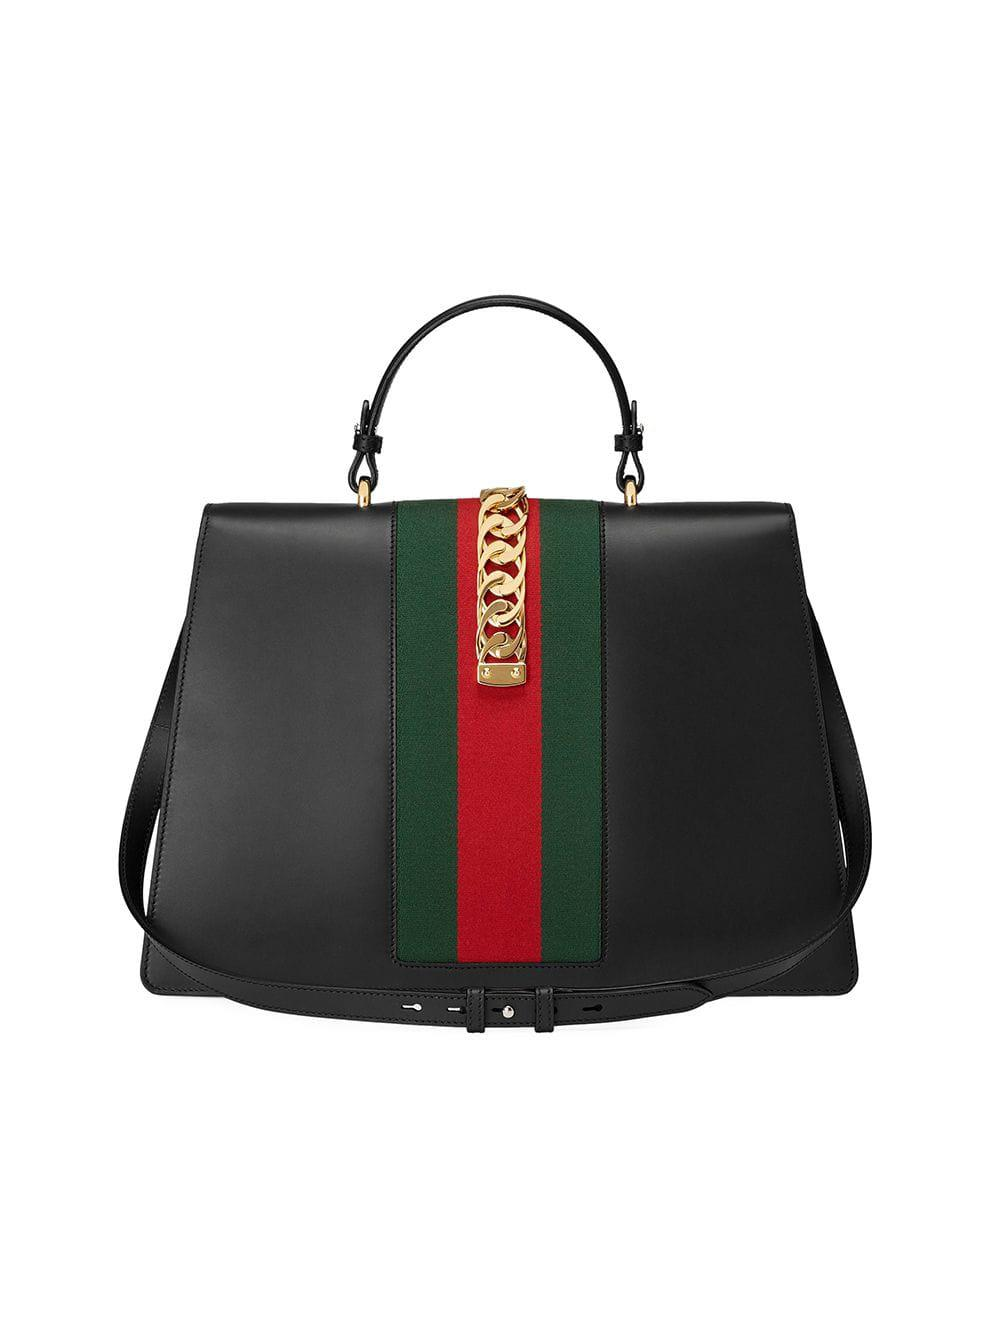 ac17f72c1b Lyst - Gucci Sylvie Leather Maxi Top Handle Bag in Black